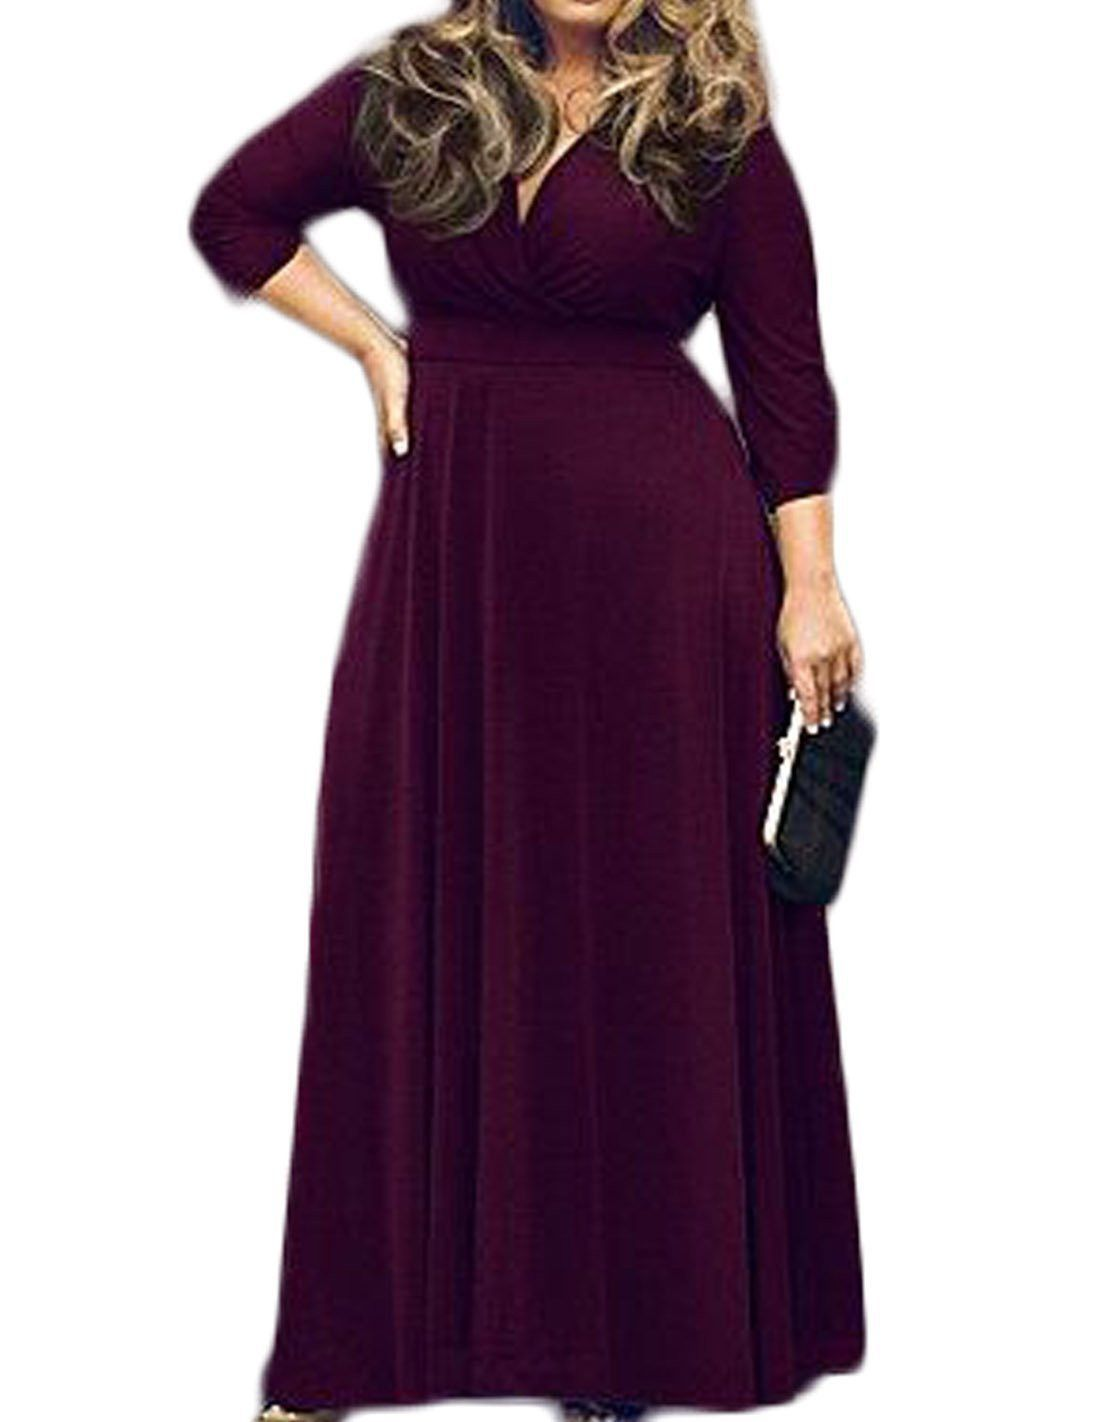 Sophisticated plus size dress dress me pretty and donut skirt the